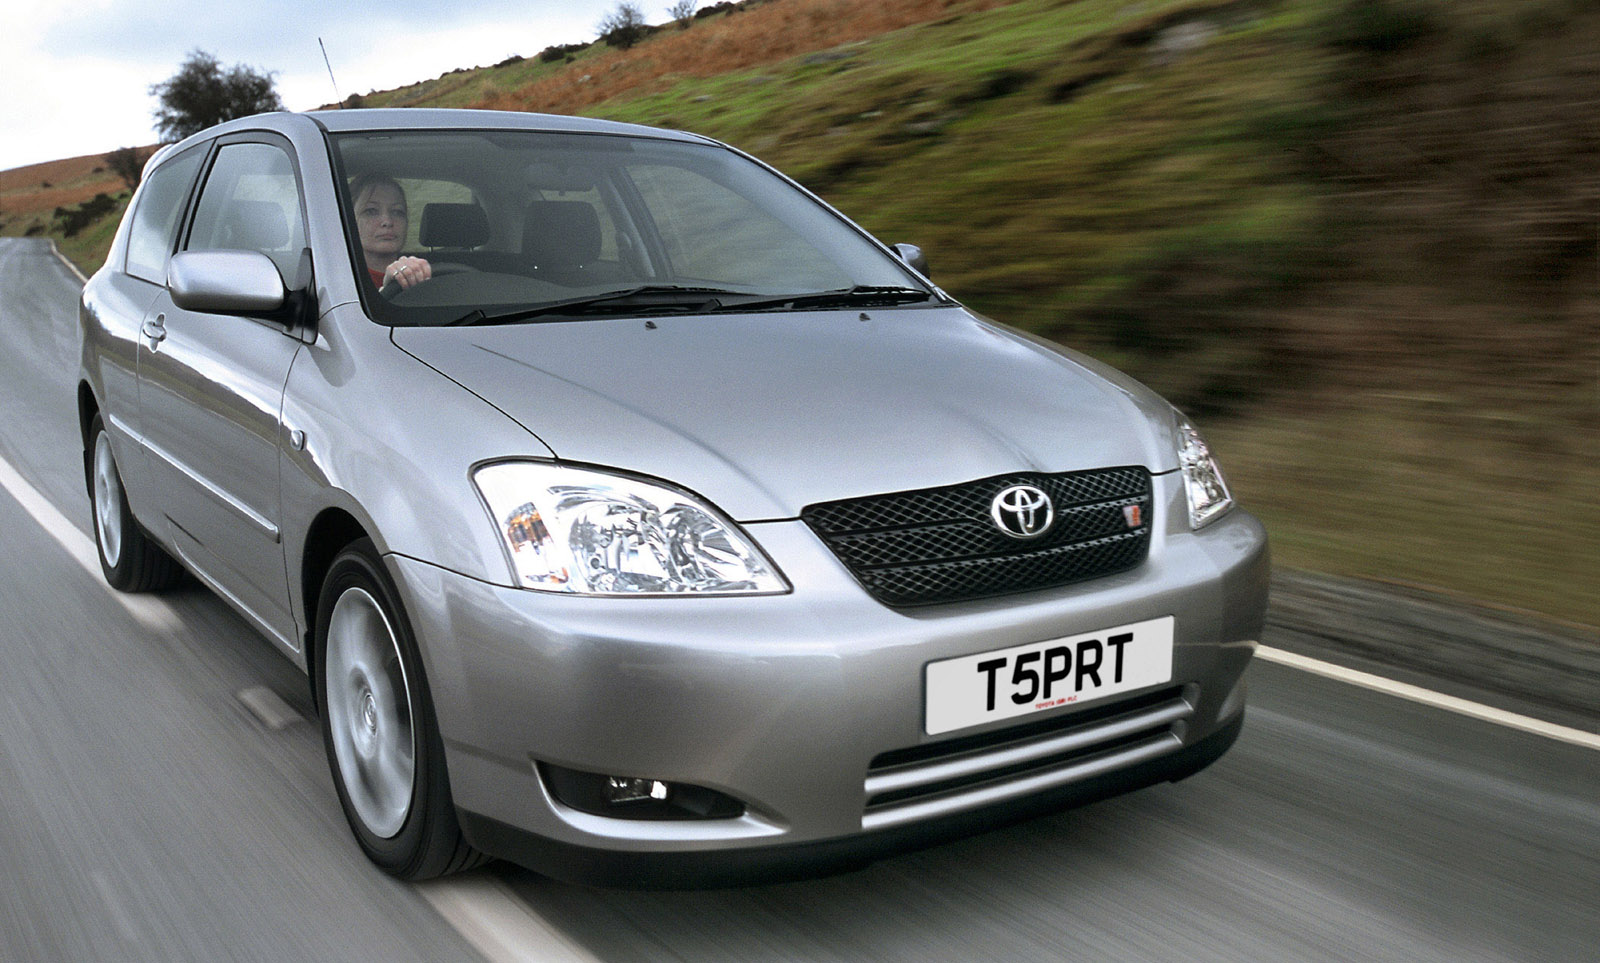 2002 Toyota Corolla T Sport picture - Cars on the net